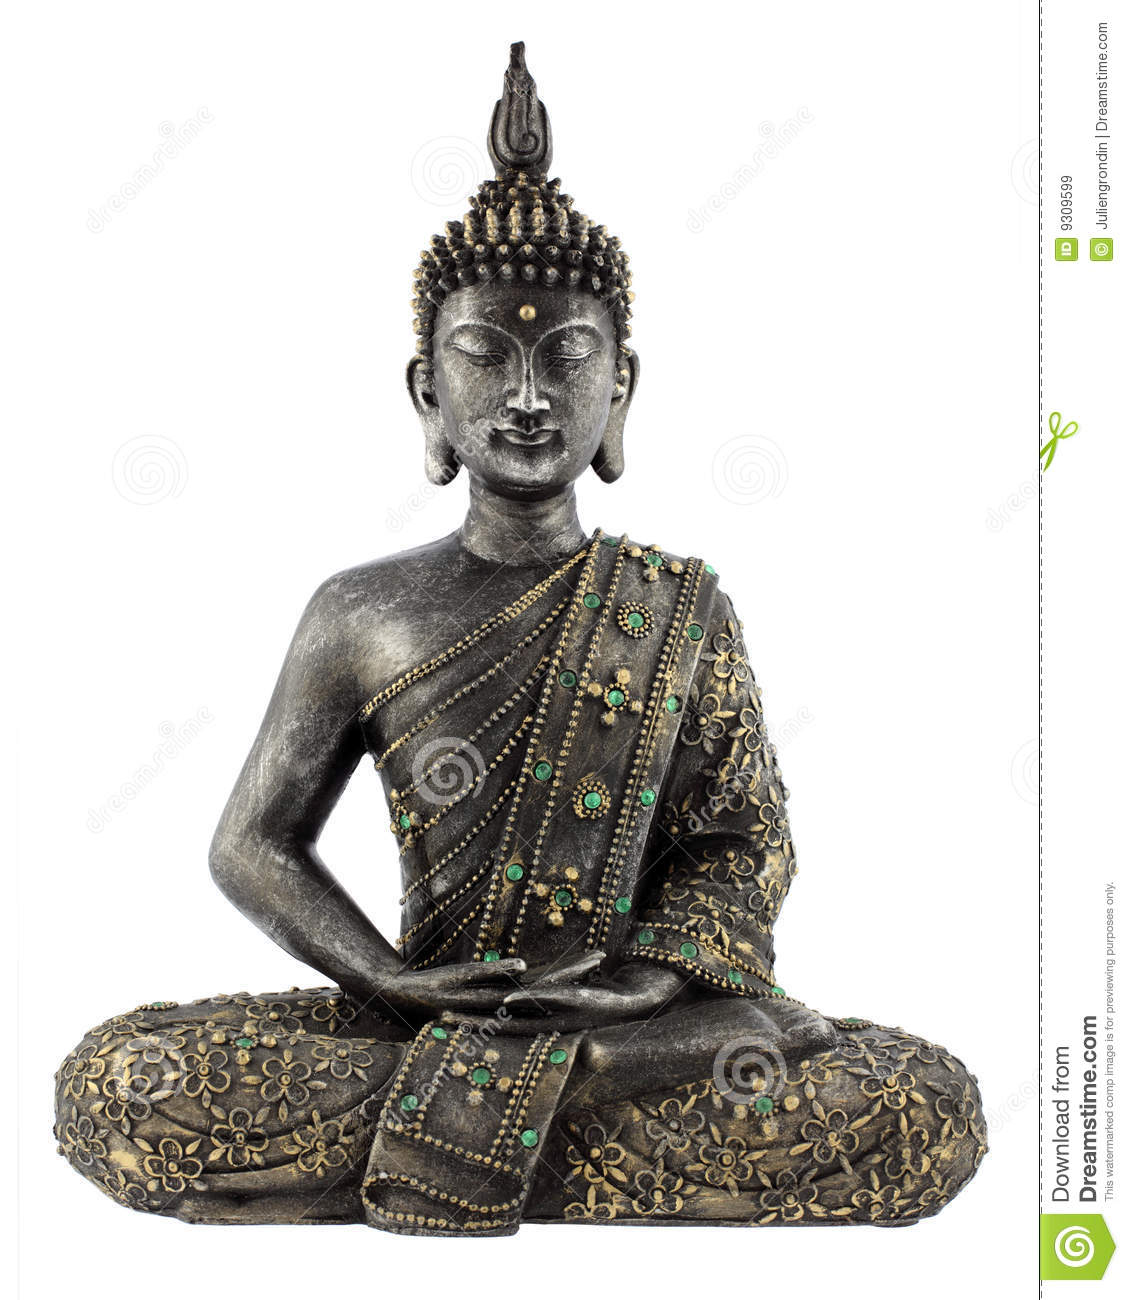 buddha statue royalty free stock images image 9309599. Black Bedroom Furniture Sets. Home Design Ideas